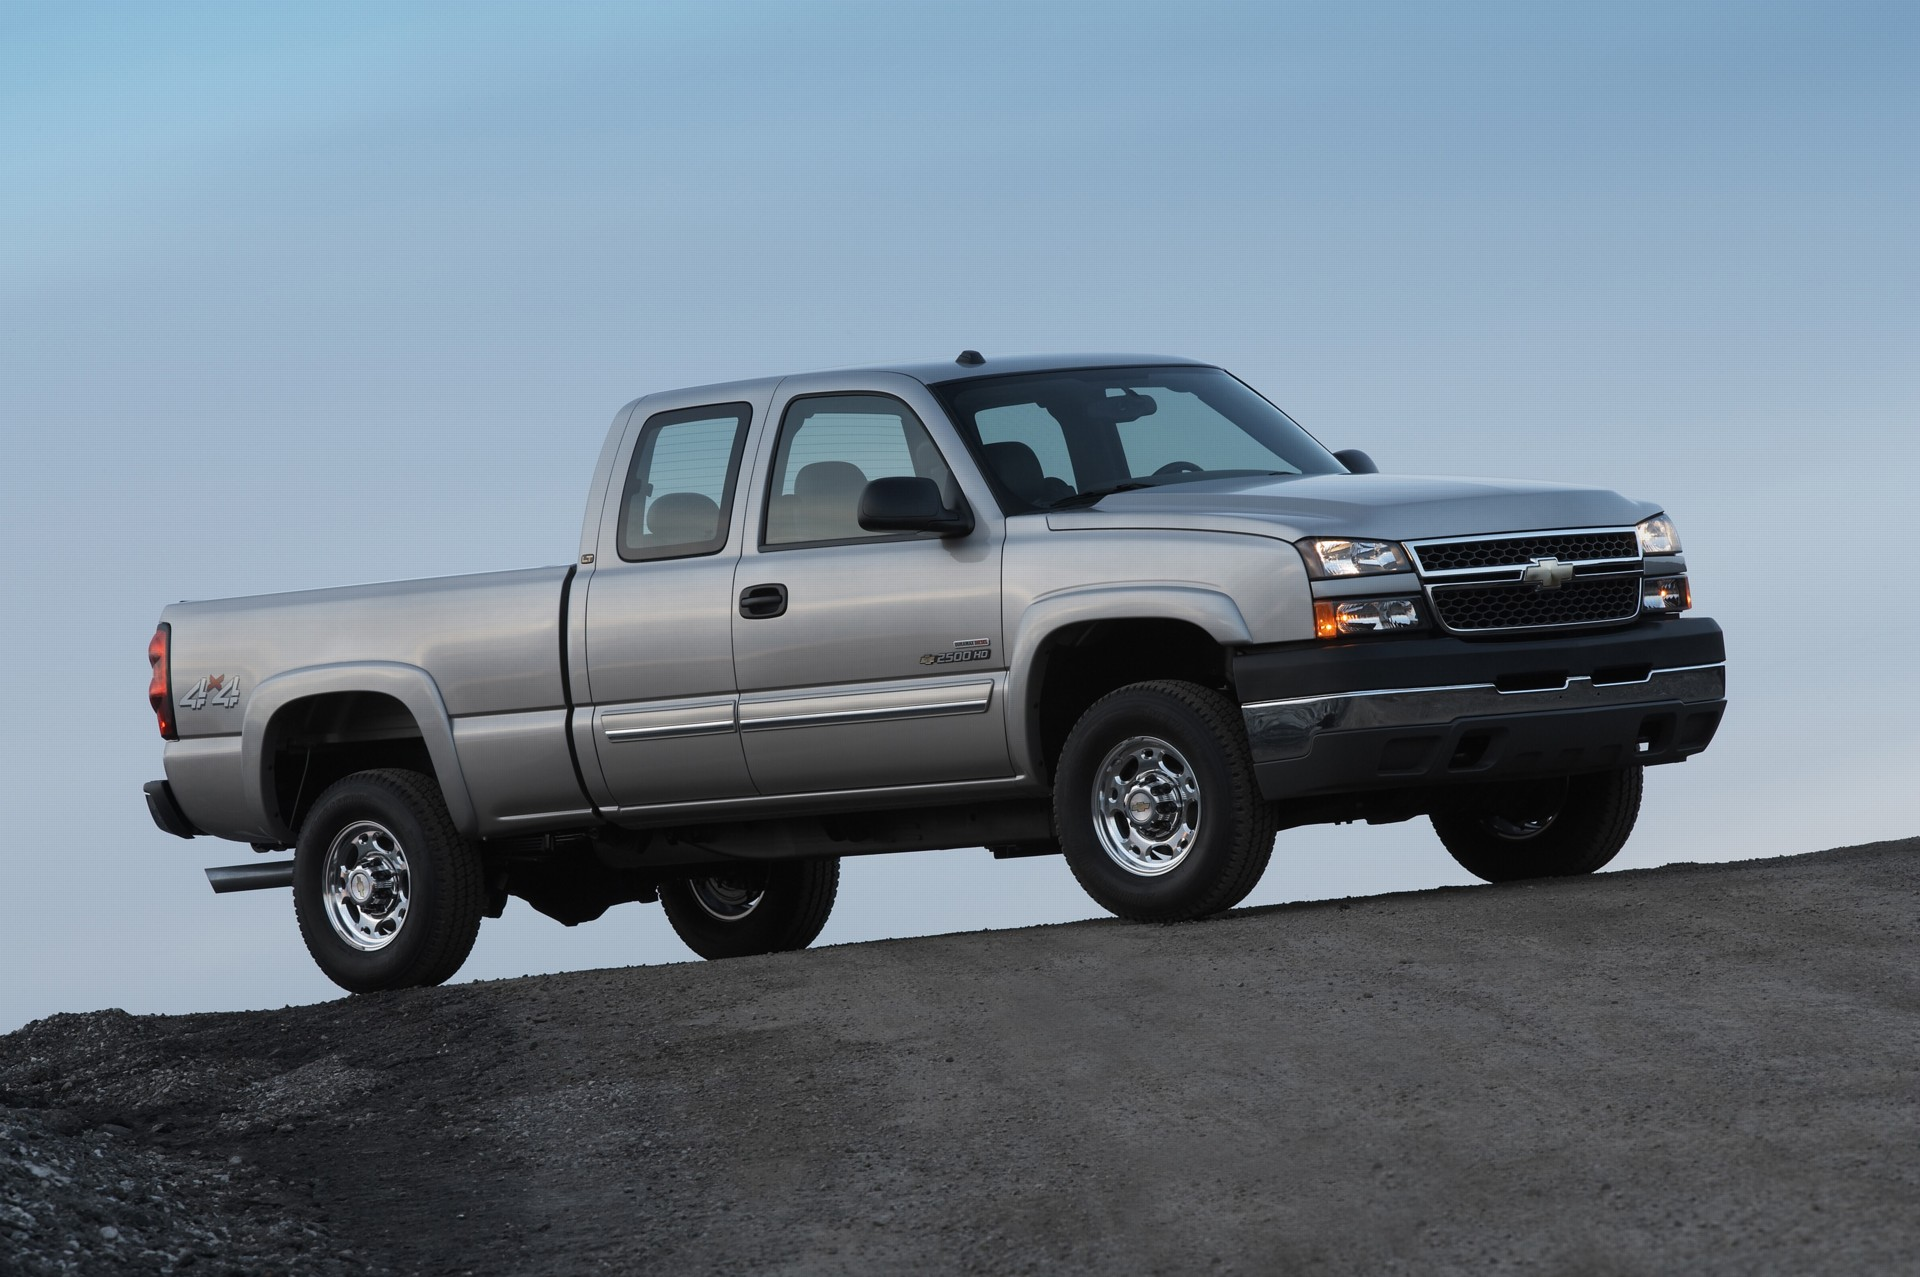 2007 chevrolet silverado pictures history value research news. Black Bedroom Furniture Sets. Home Design Ideas